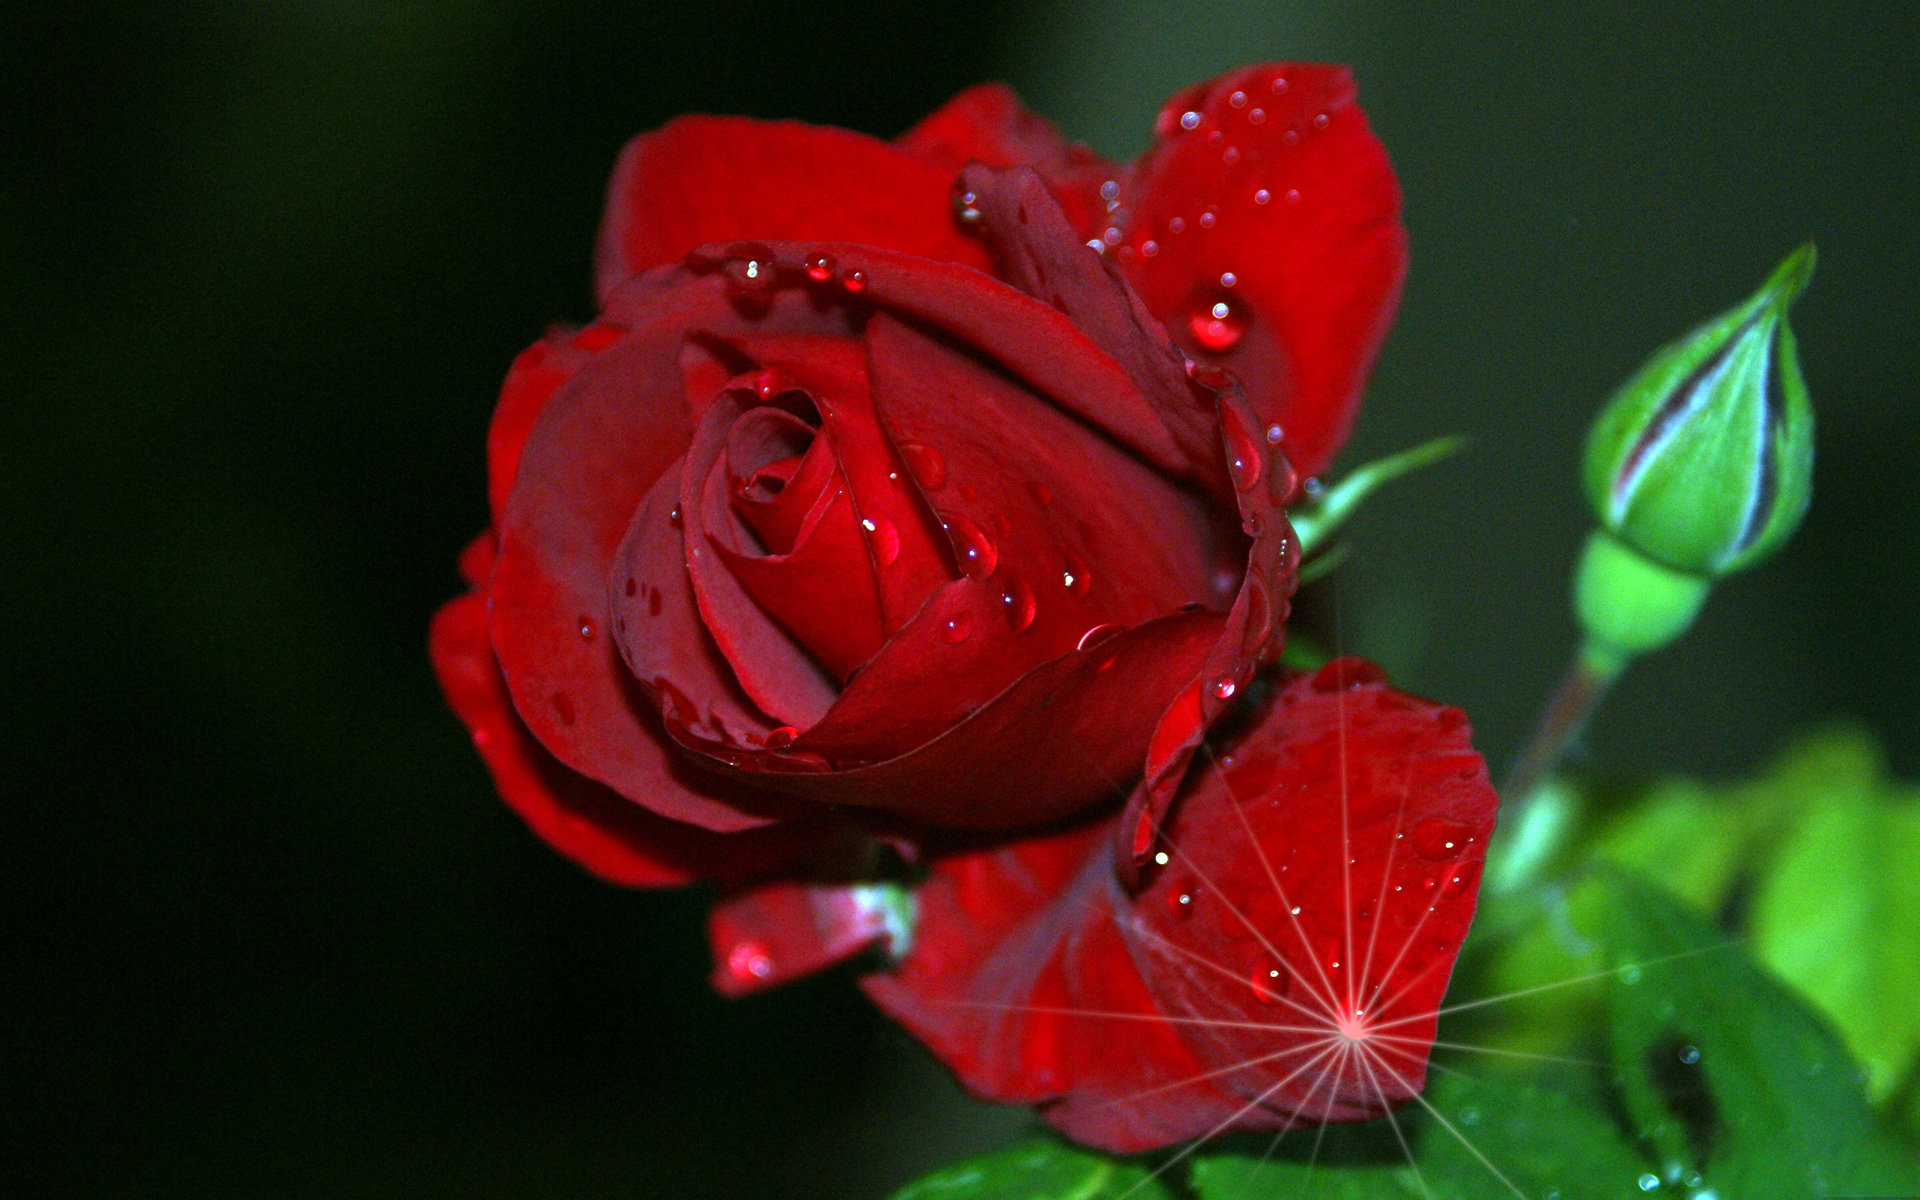 Free photos of flowers roses jpg transparent red rose hd images free download - hdwalltop.com | Flowers ... jpg transparent